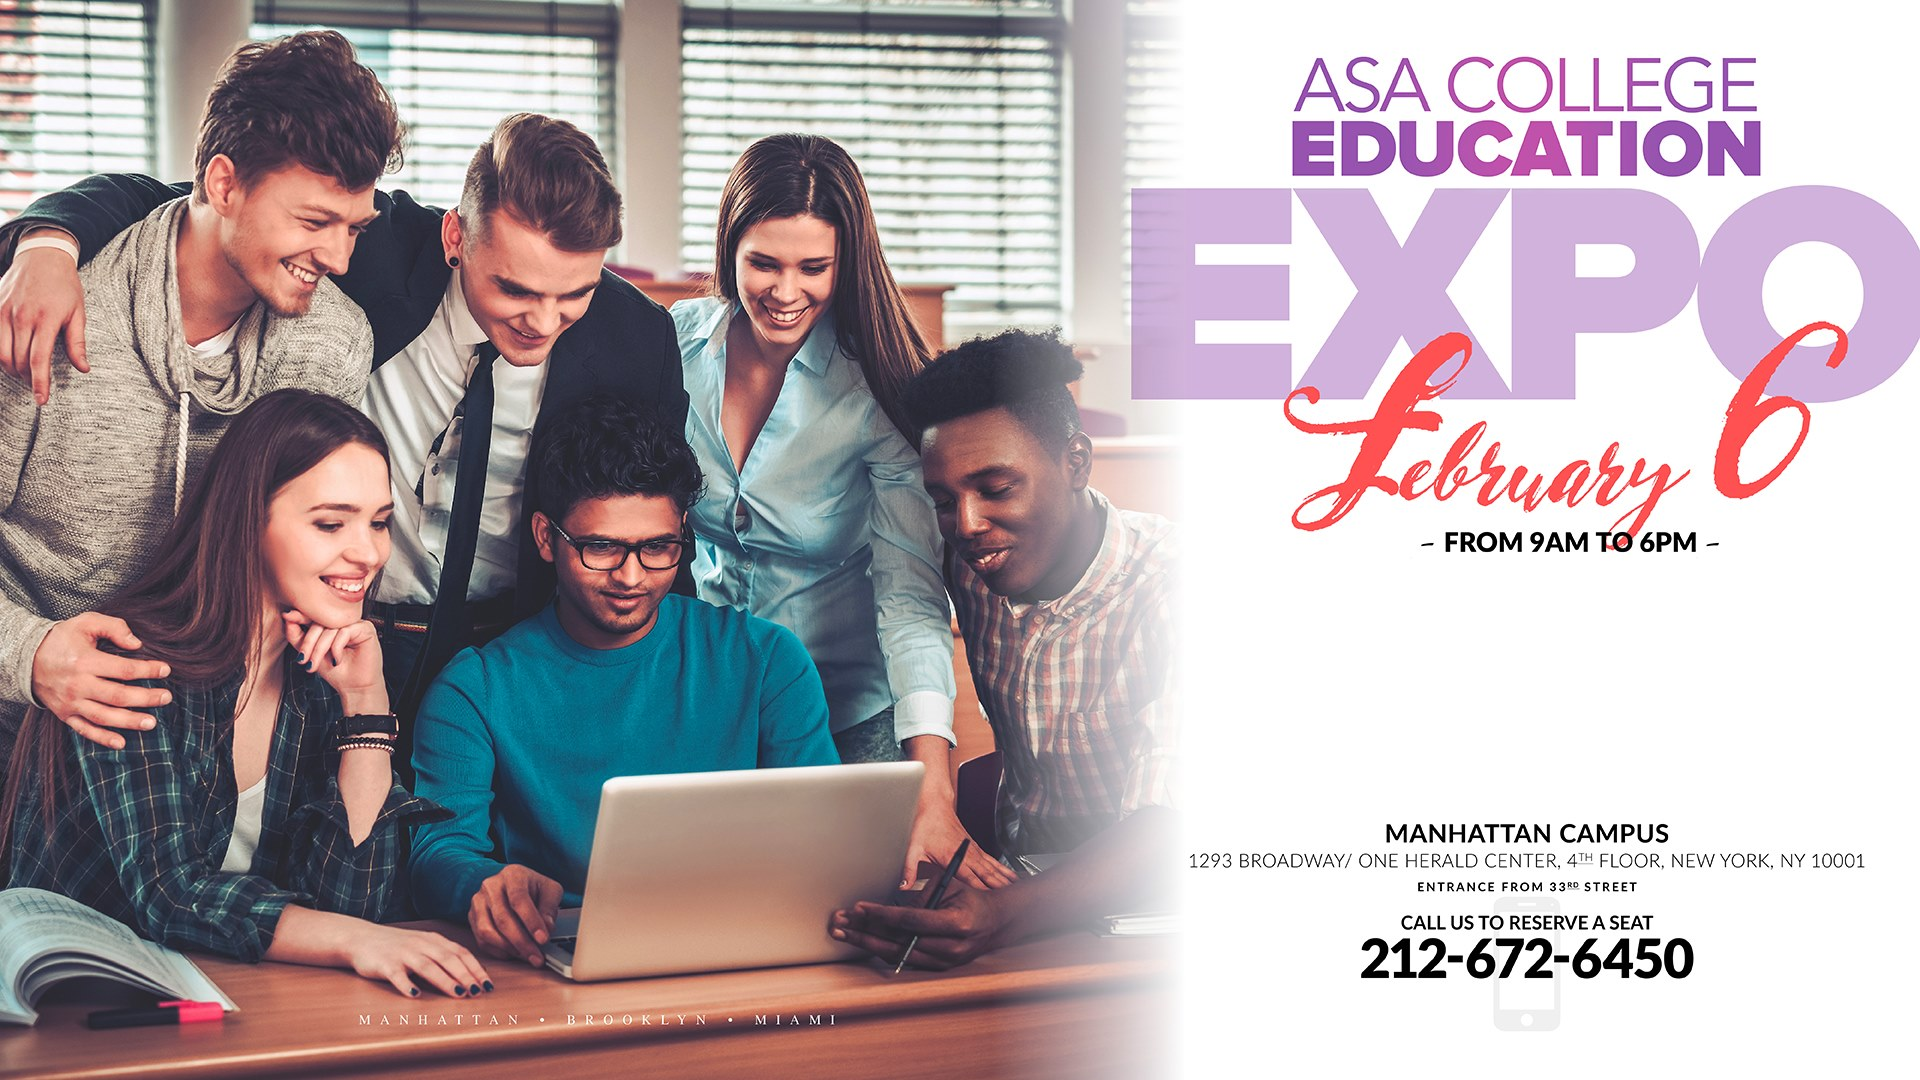 Education Expo 2020 in New York at ASA College. Legal Studies, Healthcare, Business, Computing...